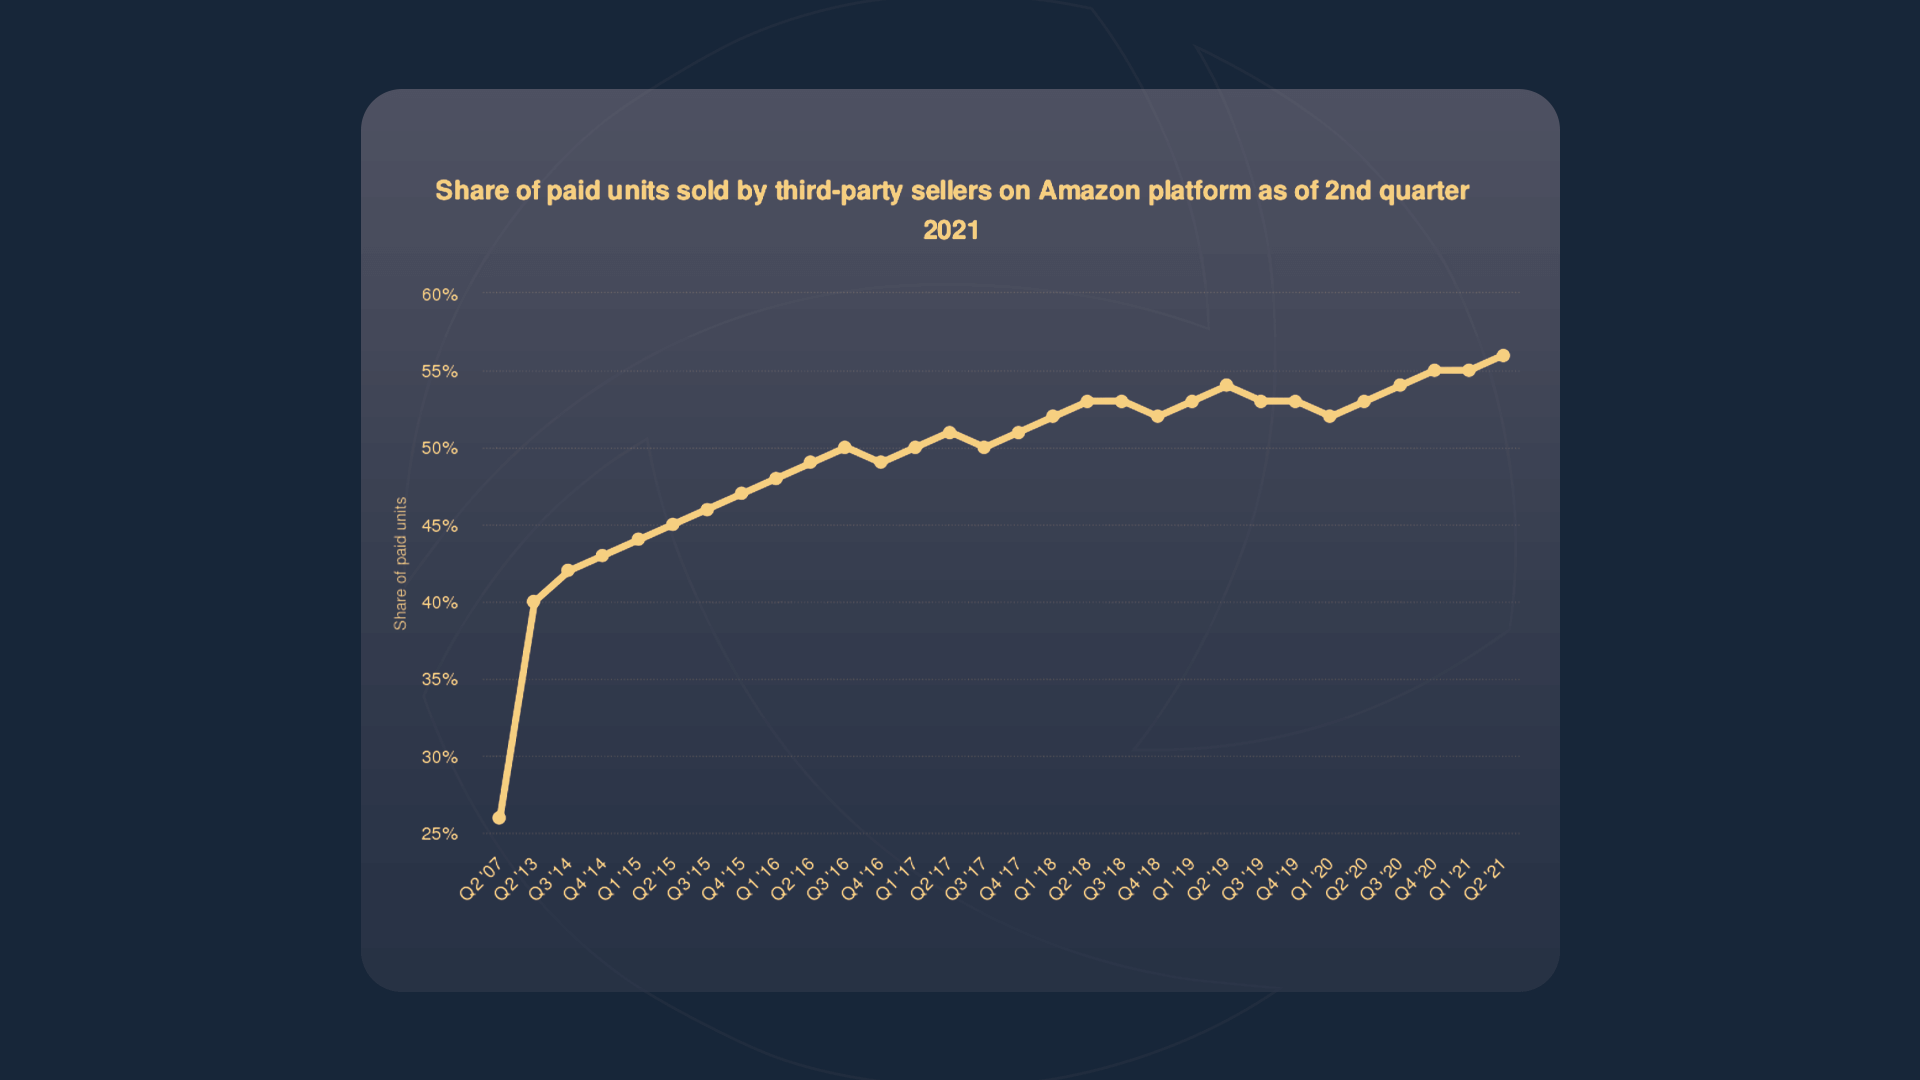 Line graph showing the share of sales made by third-party sellers on Amazon from the 2nd quarter of 2007 until the 2nd quarter of 2021 - starting at 25% and jumping to a high of 55% in 2021.